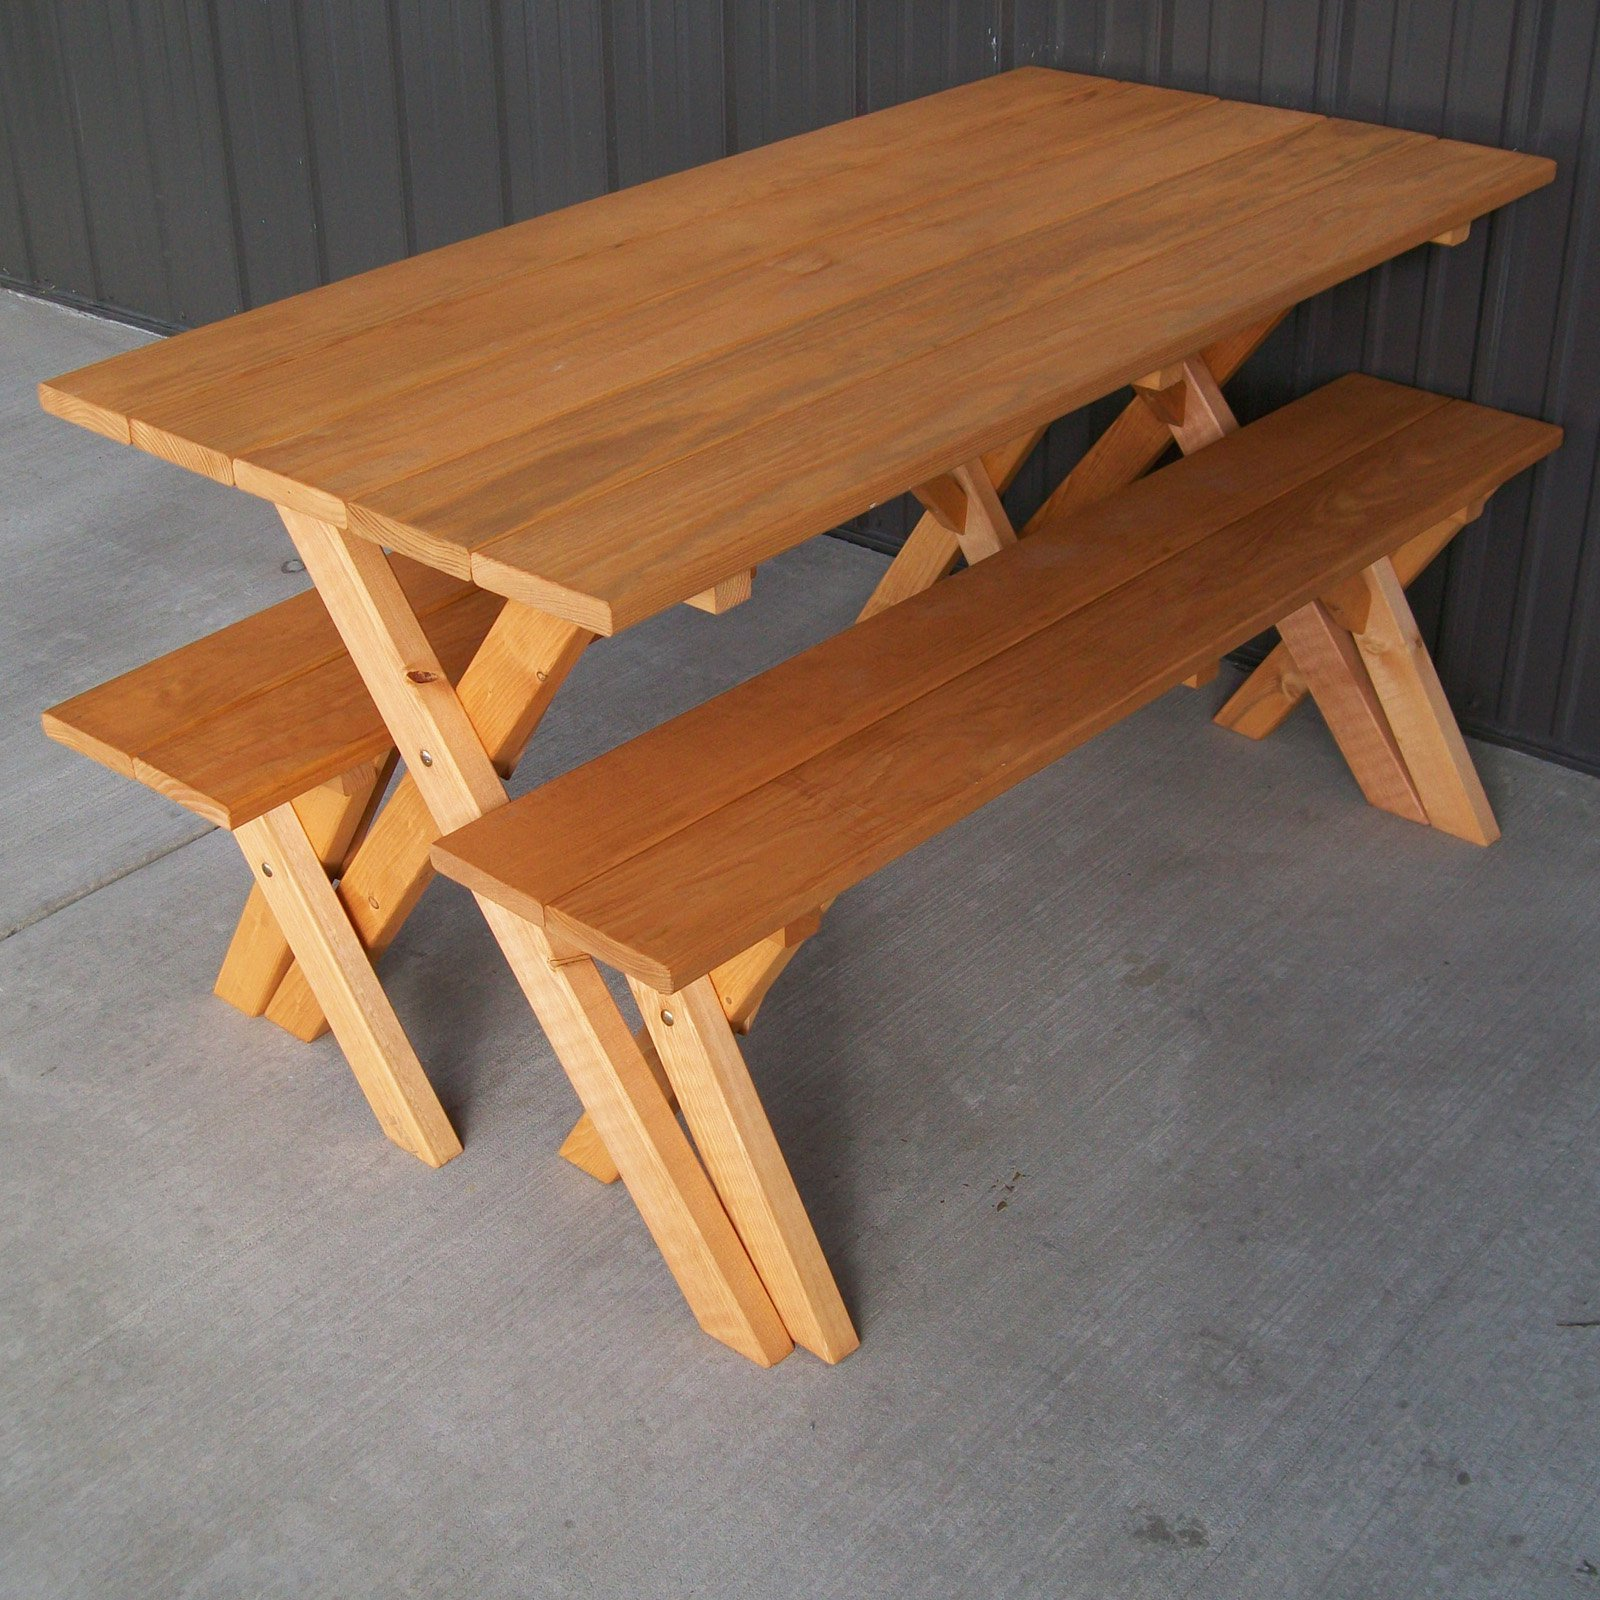 A & L Furniture Pine Cross Legged Picnic Table with Benches by A and L Furniture Co